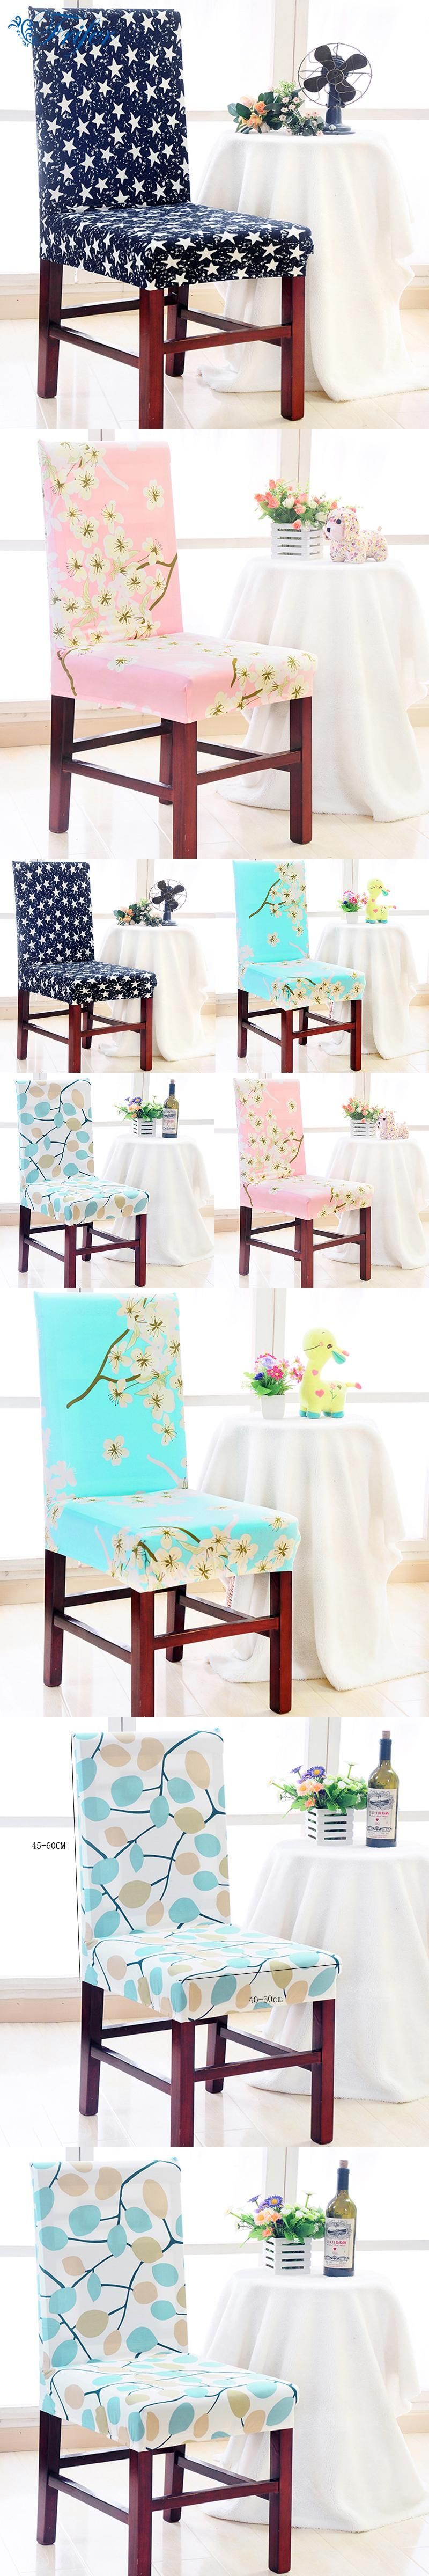 Spandex Stretch Dining Chair Covers Elastic Machine Washable